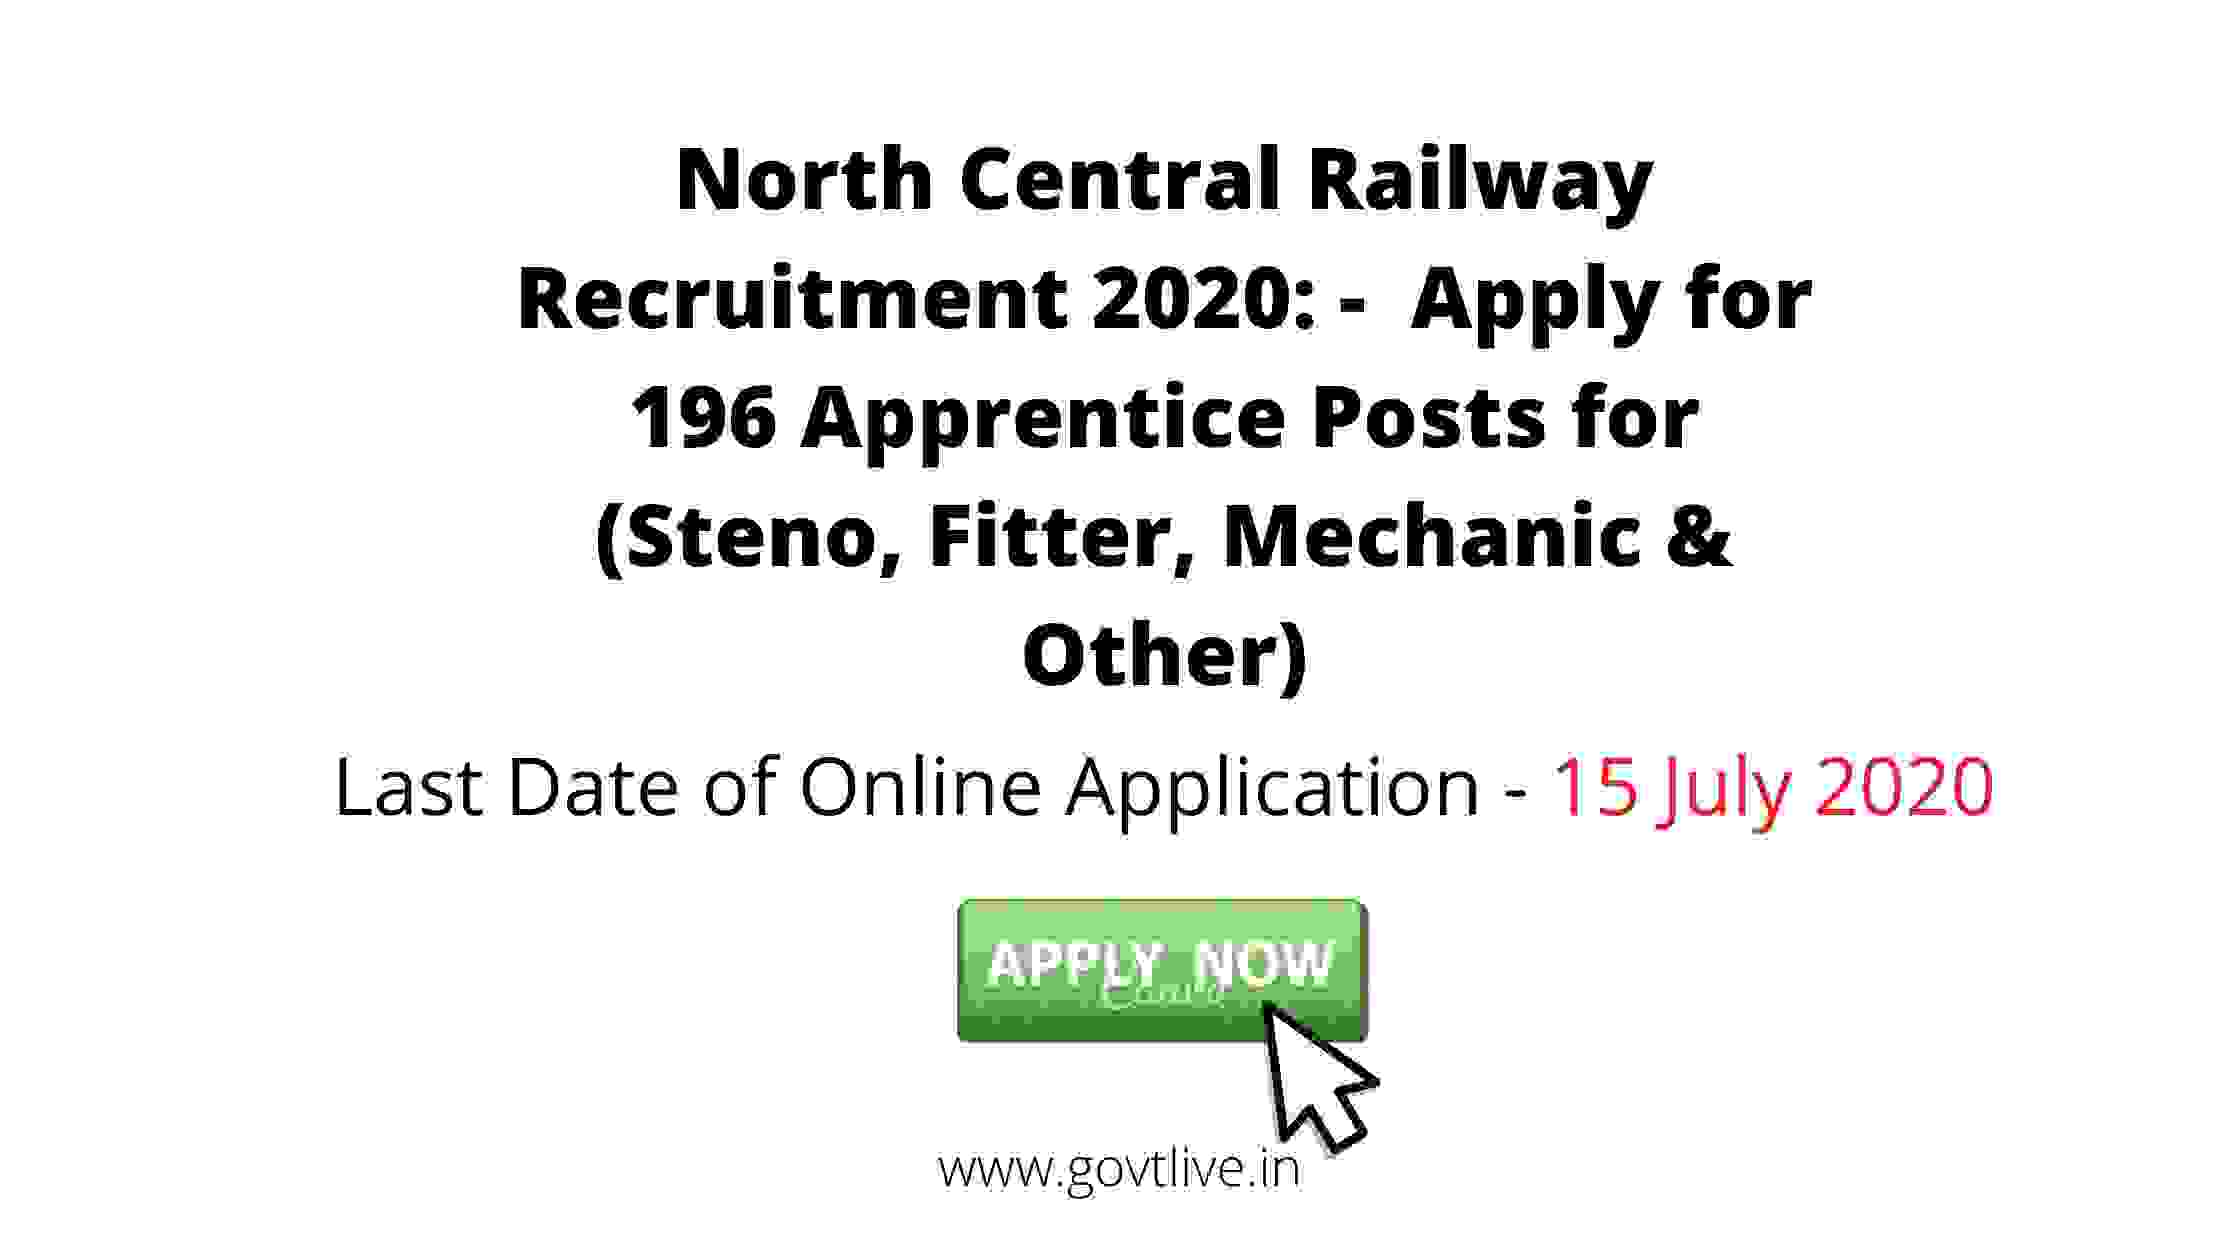 North Central Railway Recruitment 2020: -  Apply for 196 Apprentice Posts for (Steno, Fitter, Mechanic & Other)